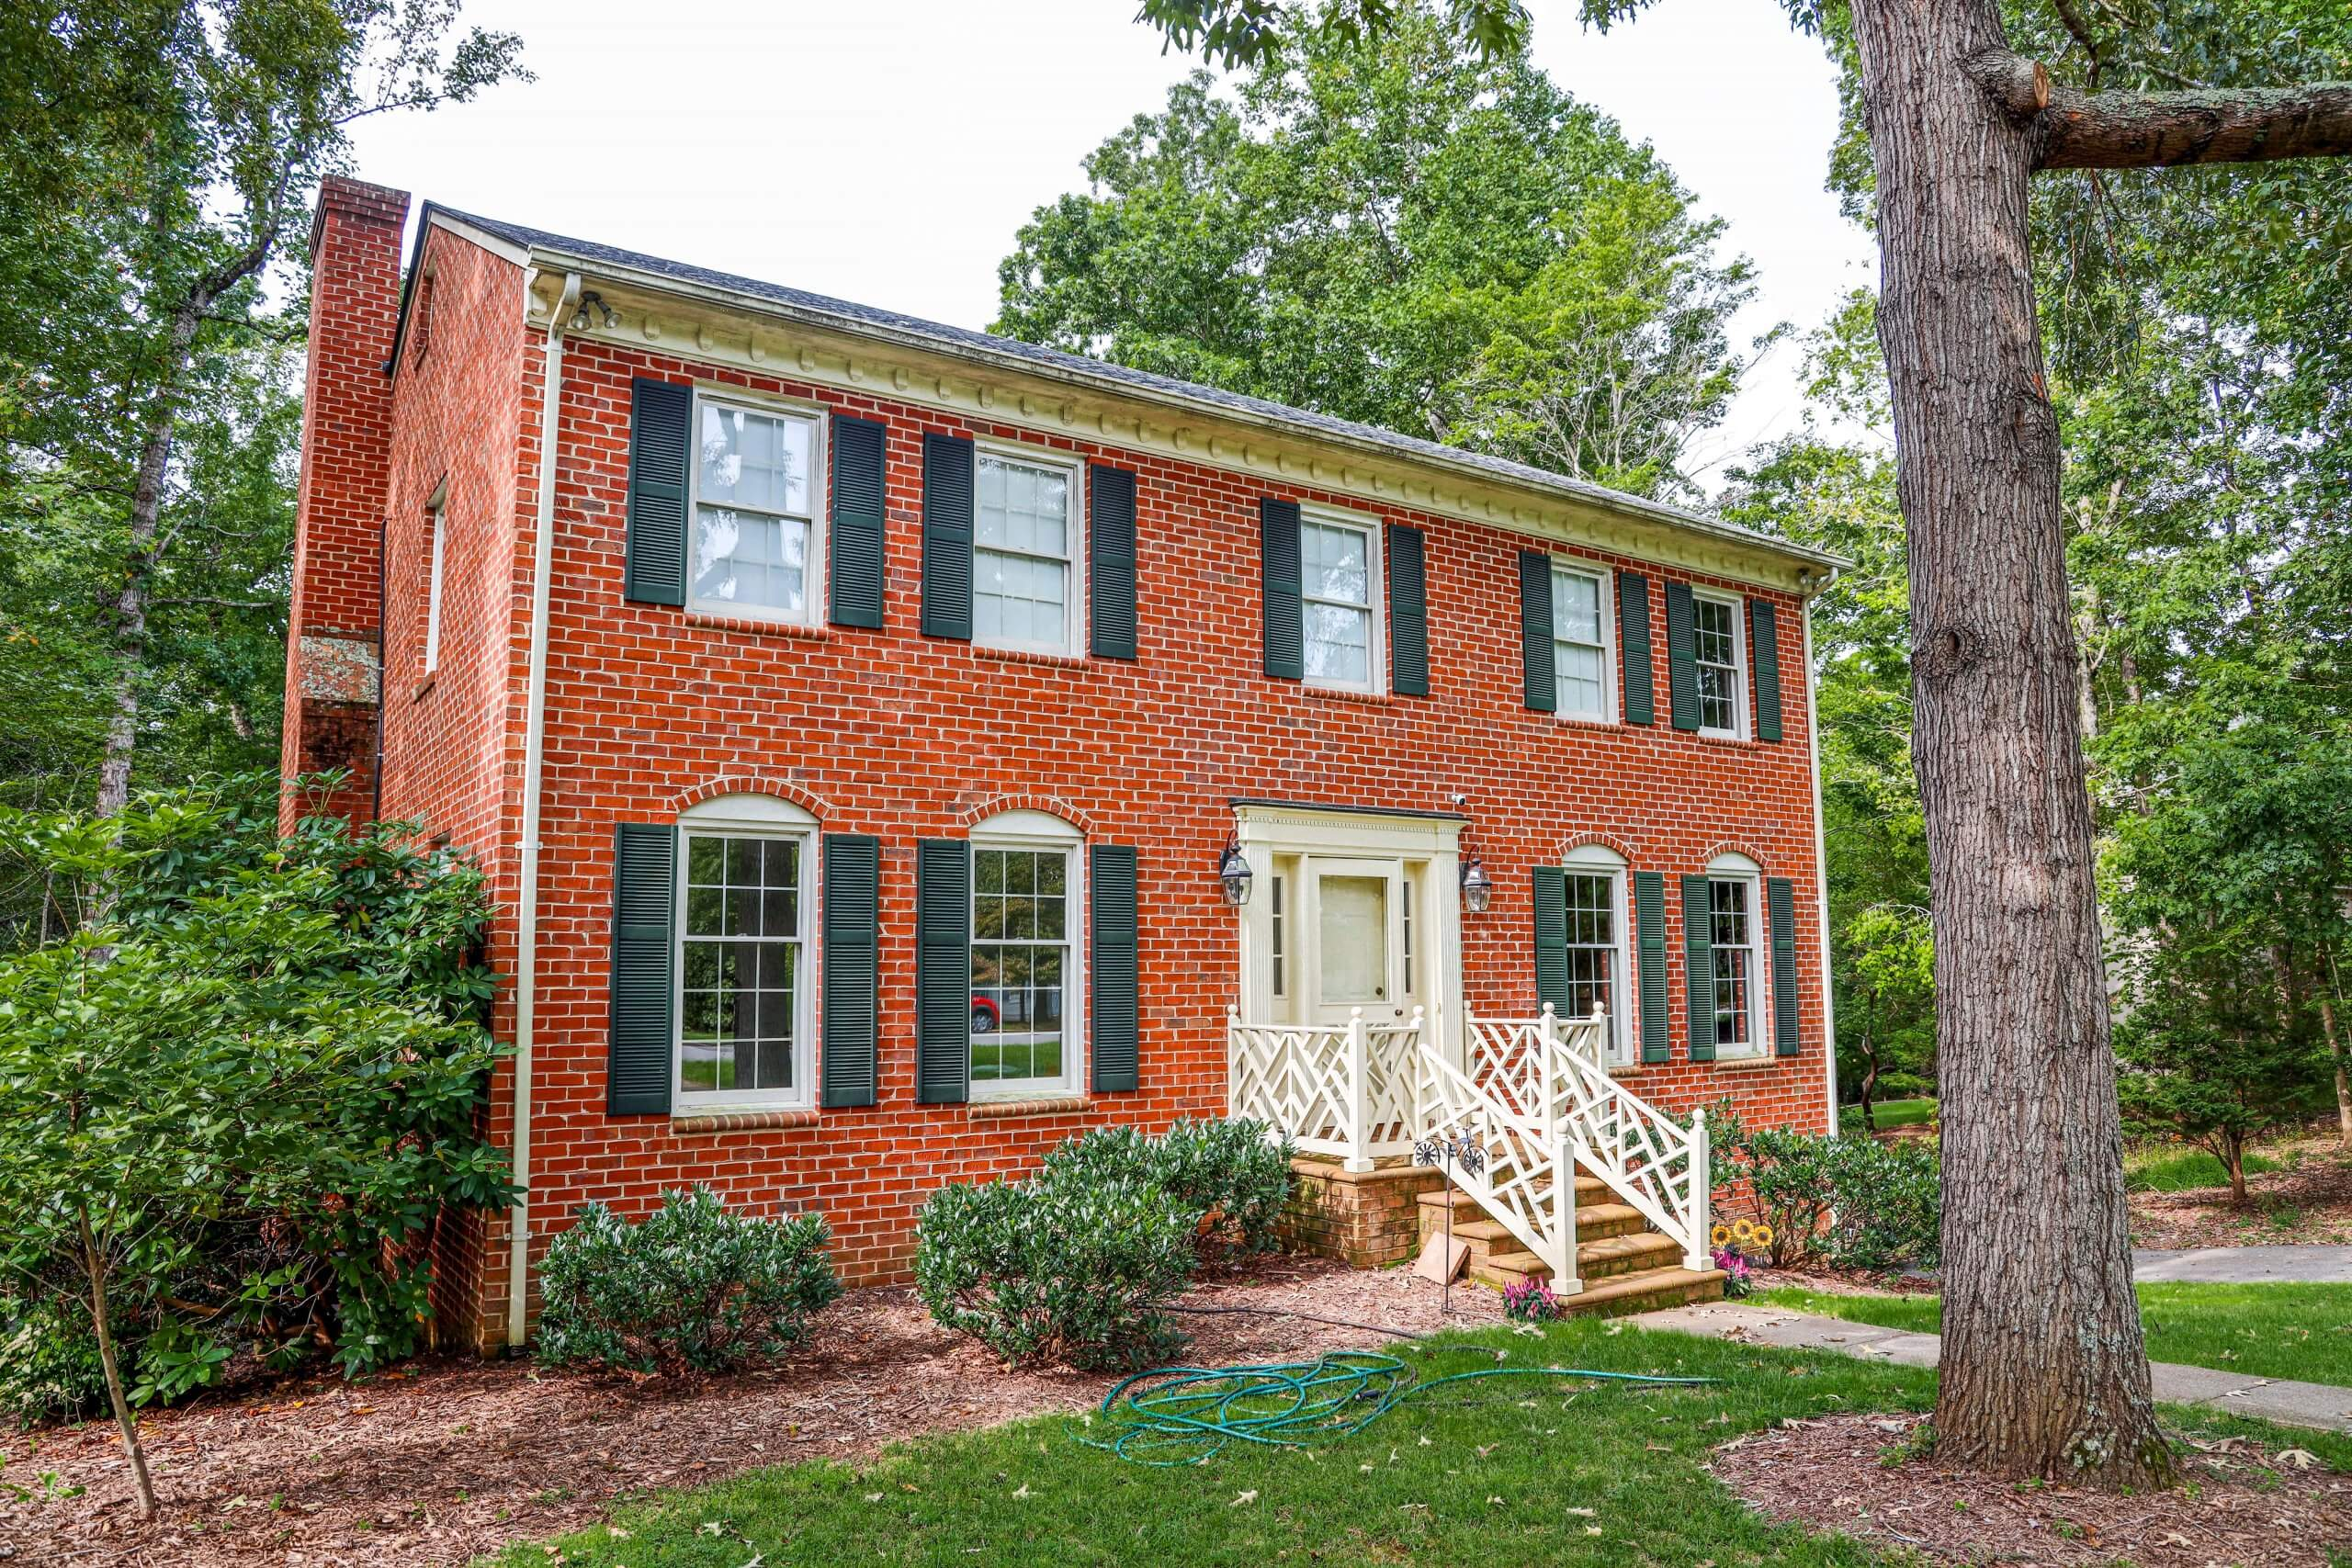 2 story brick house with a new roof in Lynchburg, VA 24503